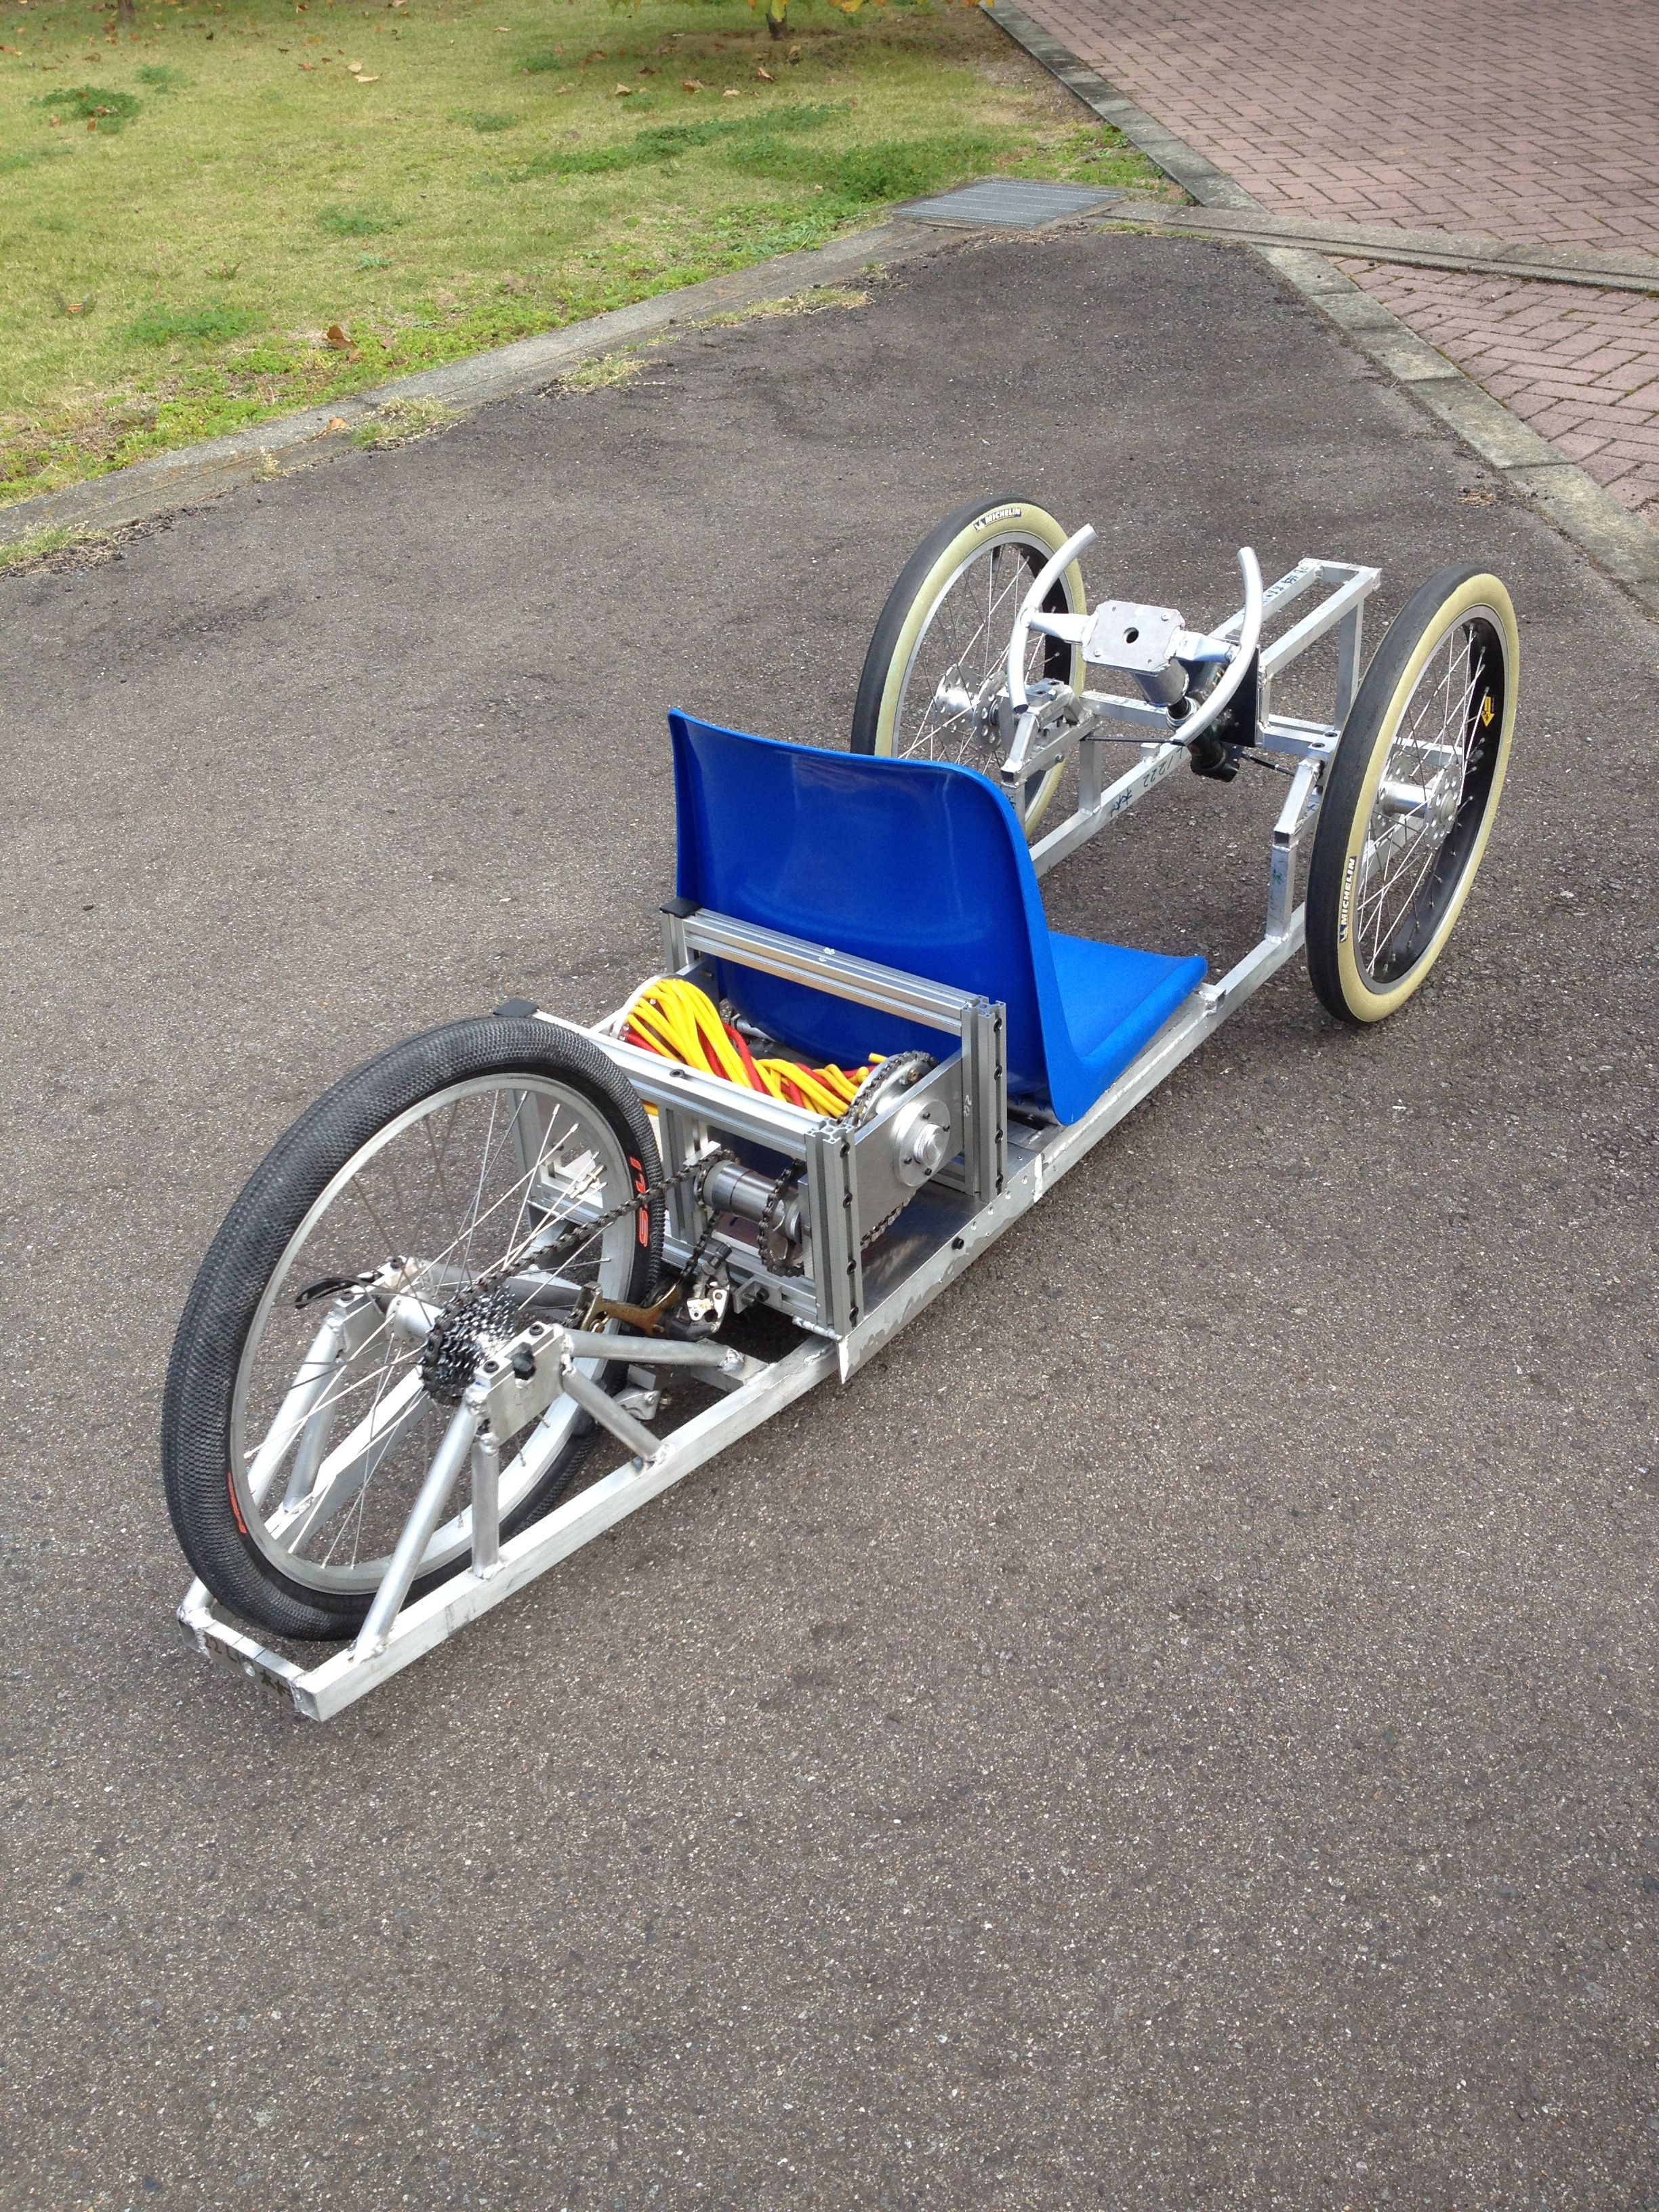 Pin On Cycle Cars